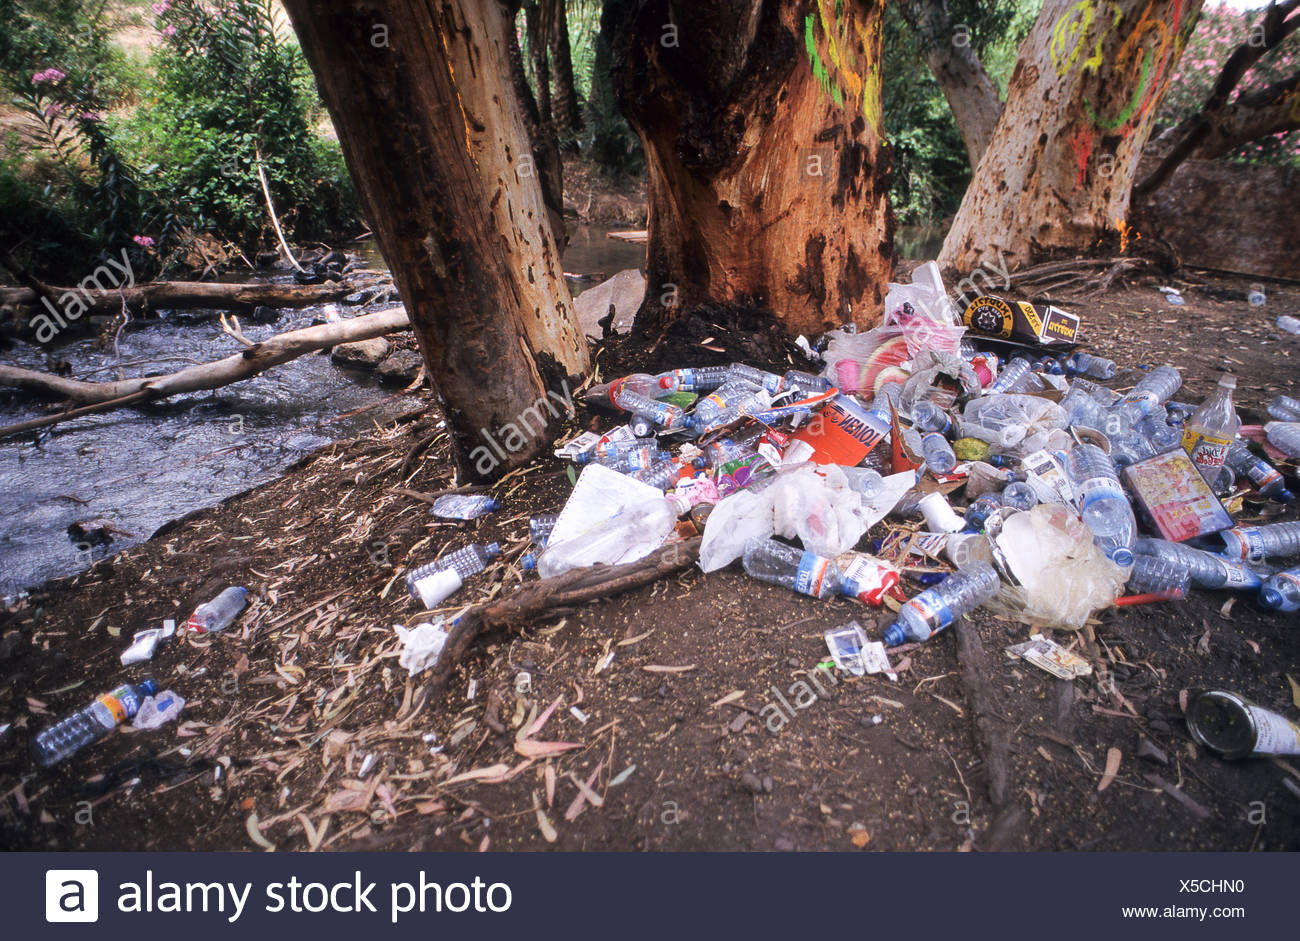 Garbage and waste left by hikers out in nature - Stock Image